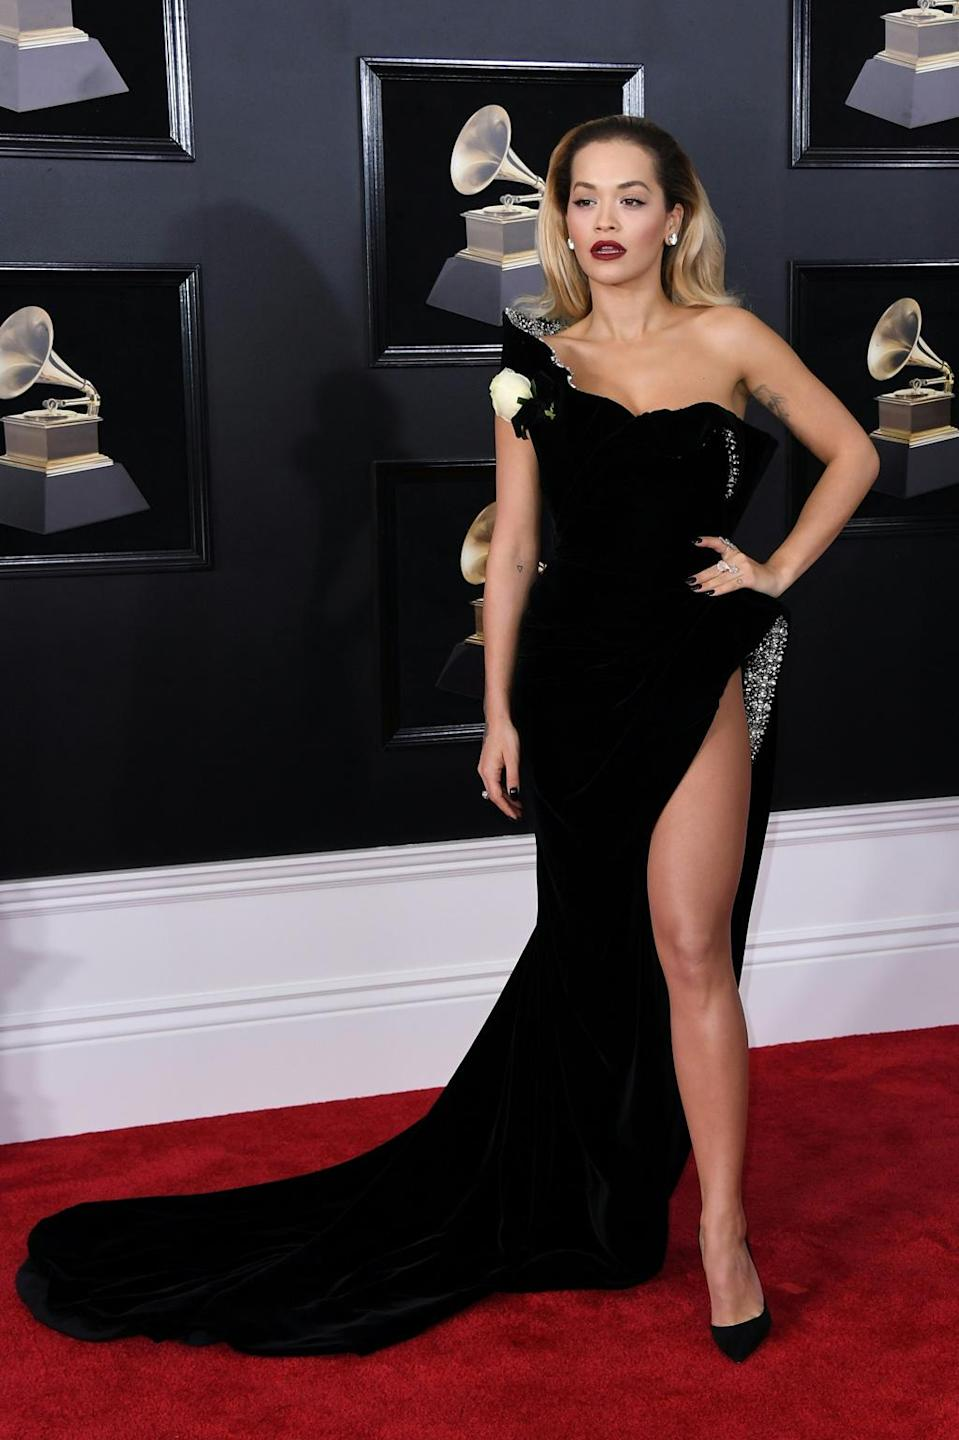 For the 60th Grammy Awards, Rita Ora hit hard with an asymmetric dress with a very, very high slit, revealing a sexy flash of upper thigh. New York, January 28, 2018.